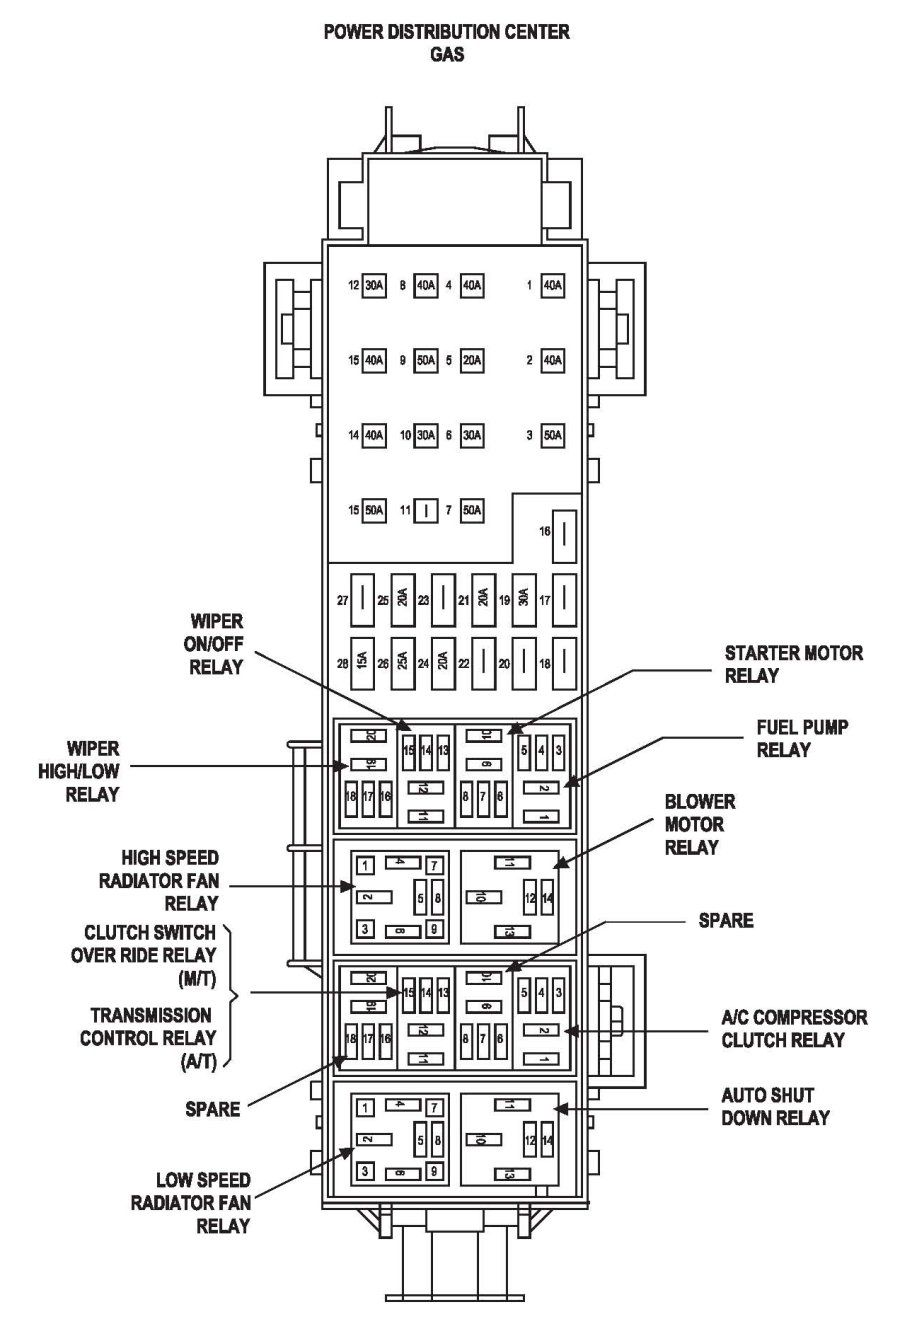 b3536c3739783eb19f827744cc42c3c4 2003 jeep wrangler diagram 1989 jeep cherokee wiring diagram 1989 jeep wrangler fuse box location at et-consult.org